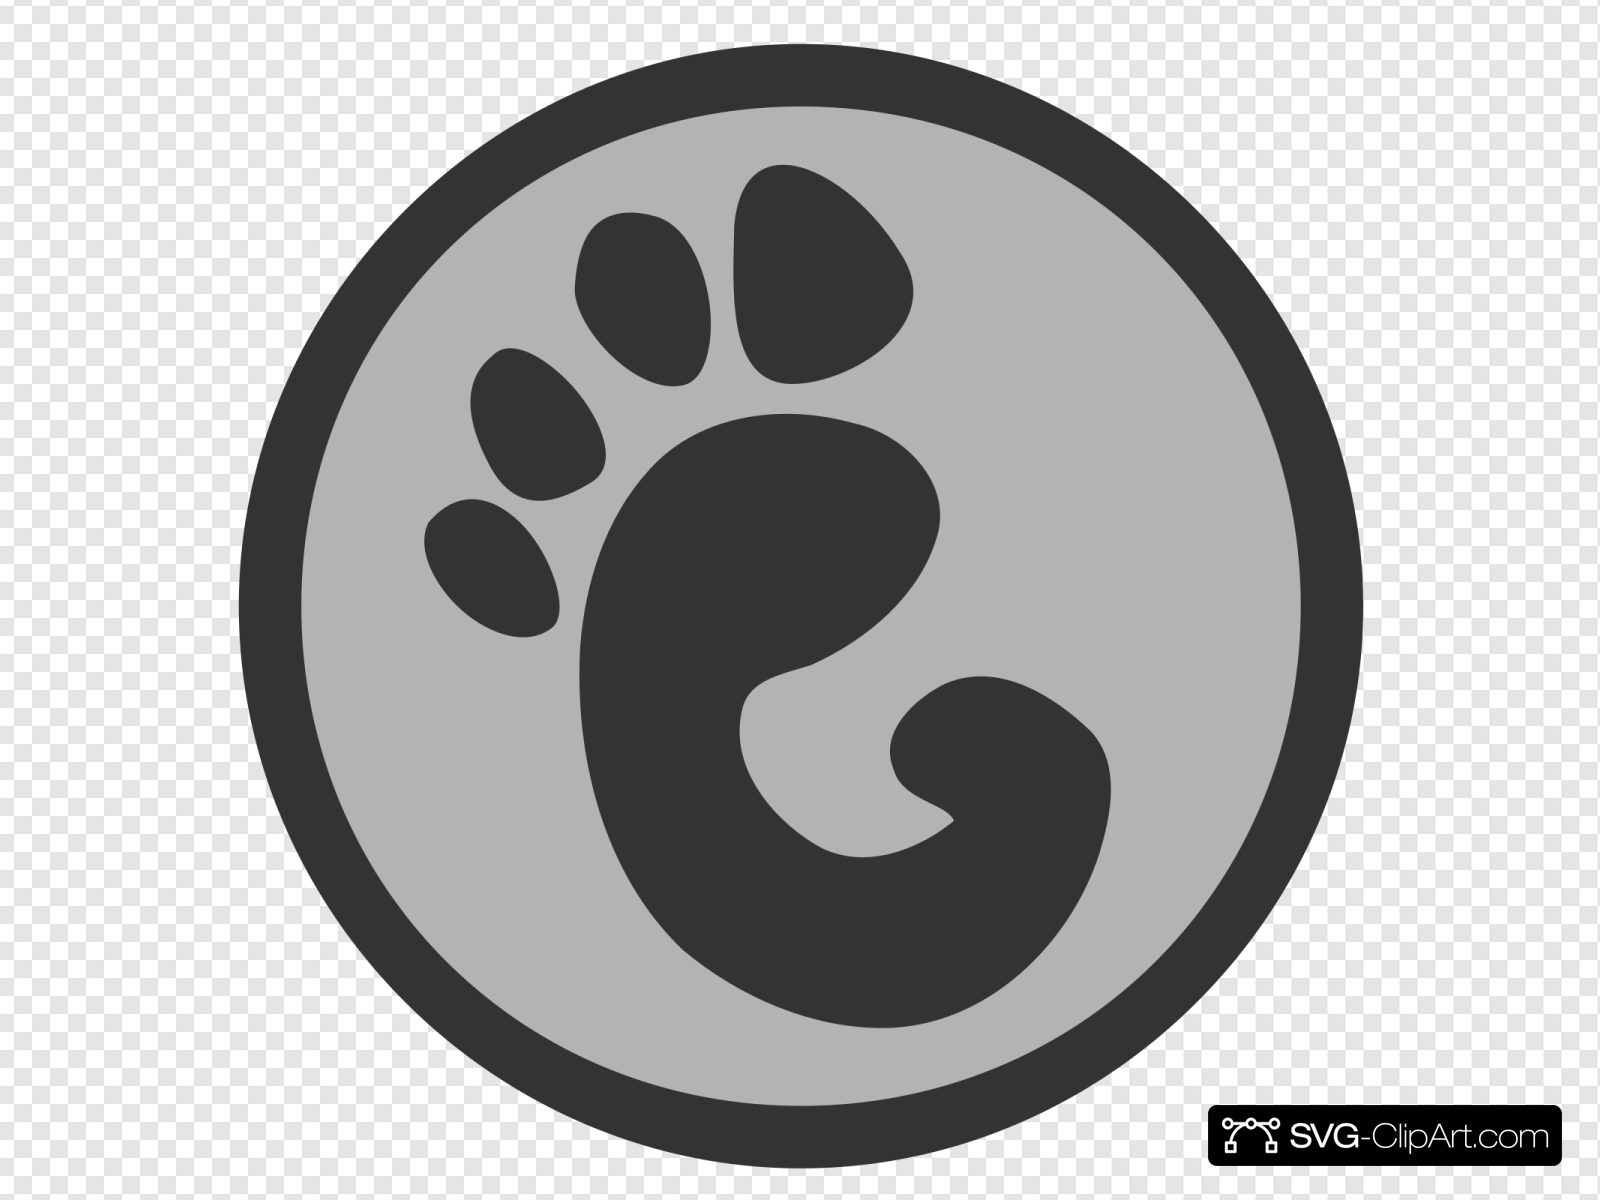 Paw Print Logo Clip art, Icon and SVG.